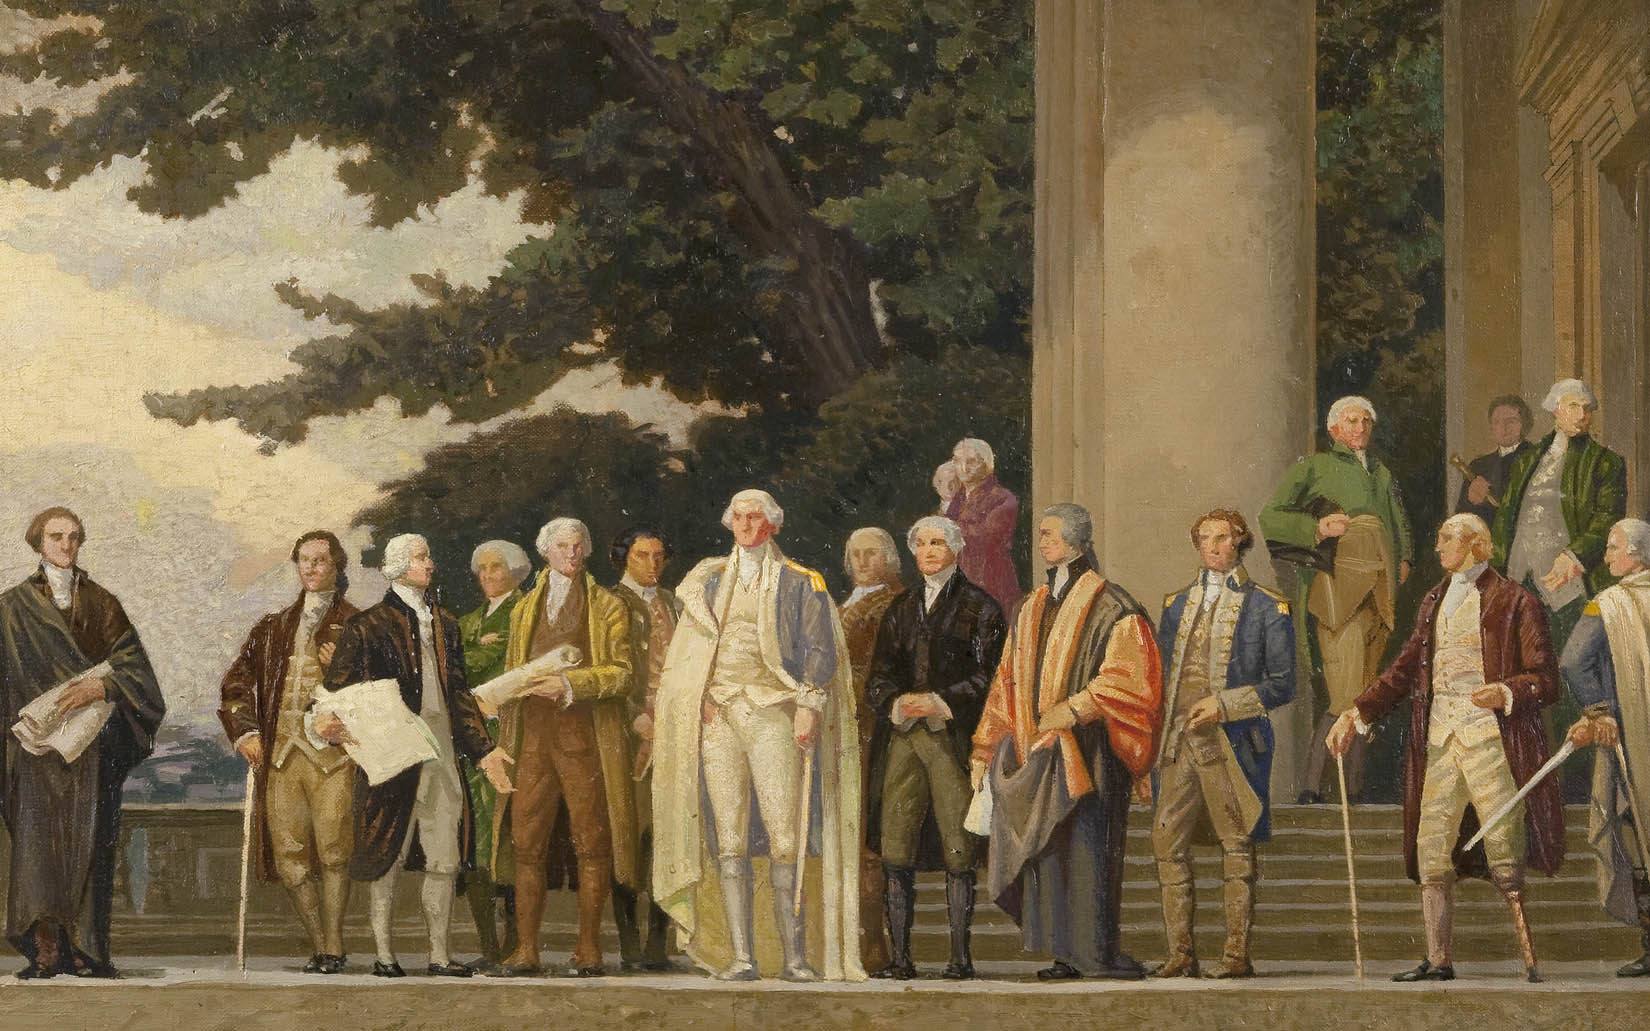 A long rectangle painting shows many figures of men dressed in formal suits from the 1700s. They are standing on some steps in groups, talking together and looking at one man. That man has a long white object in his hand. The background is a building with large columns on the left, trees, and a sky filled in with clouds. Flags are massed on the extreme right.